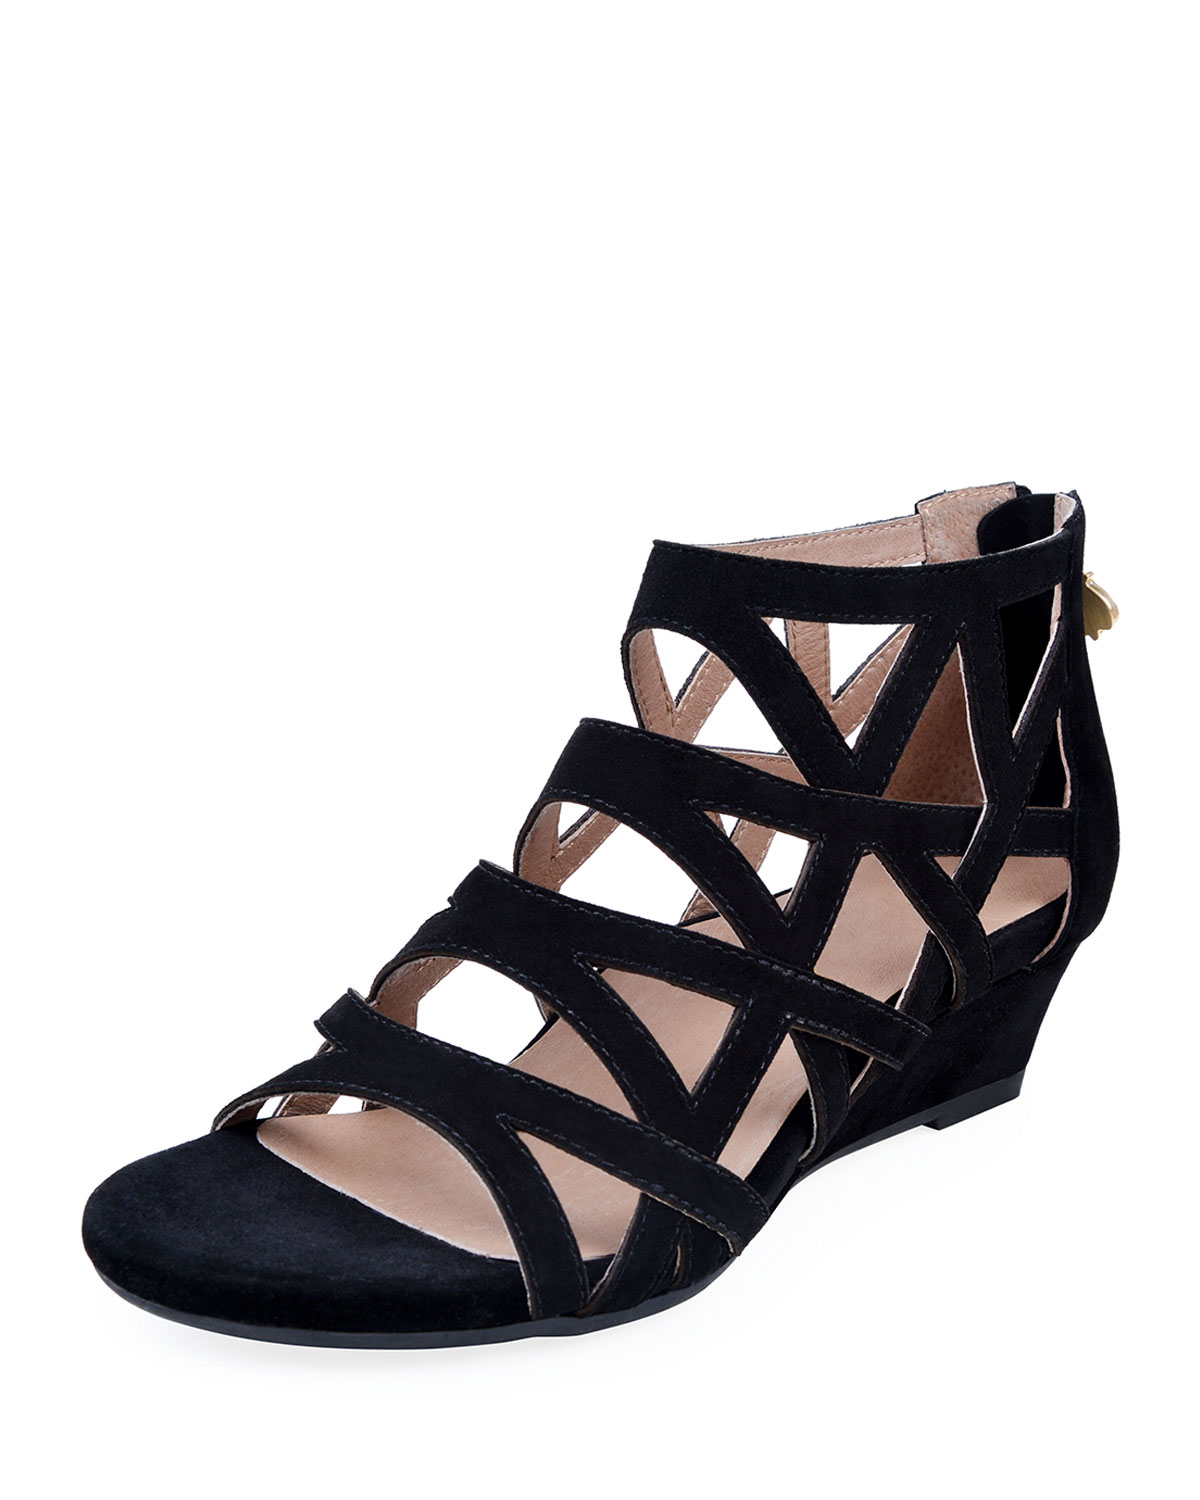 884b4d4ae84 Bettye Muller Concept Sashi Suede Caged Wedge Sandals In Black ...